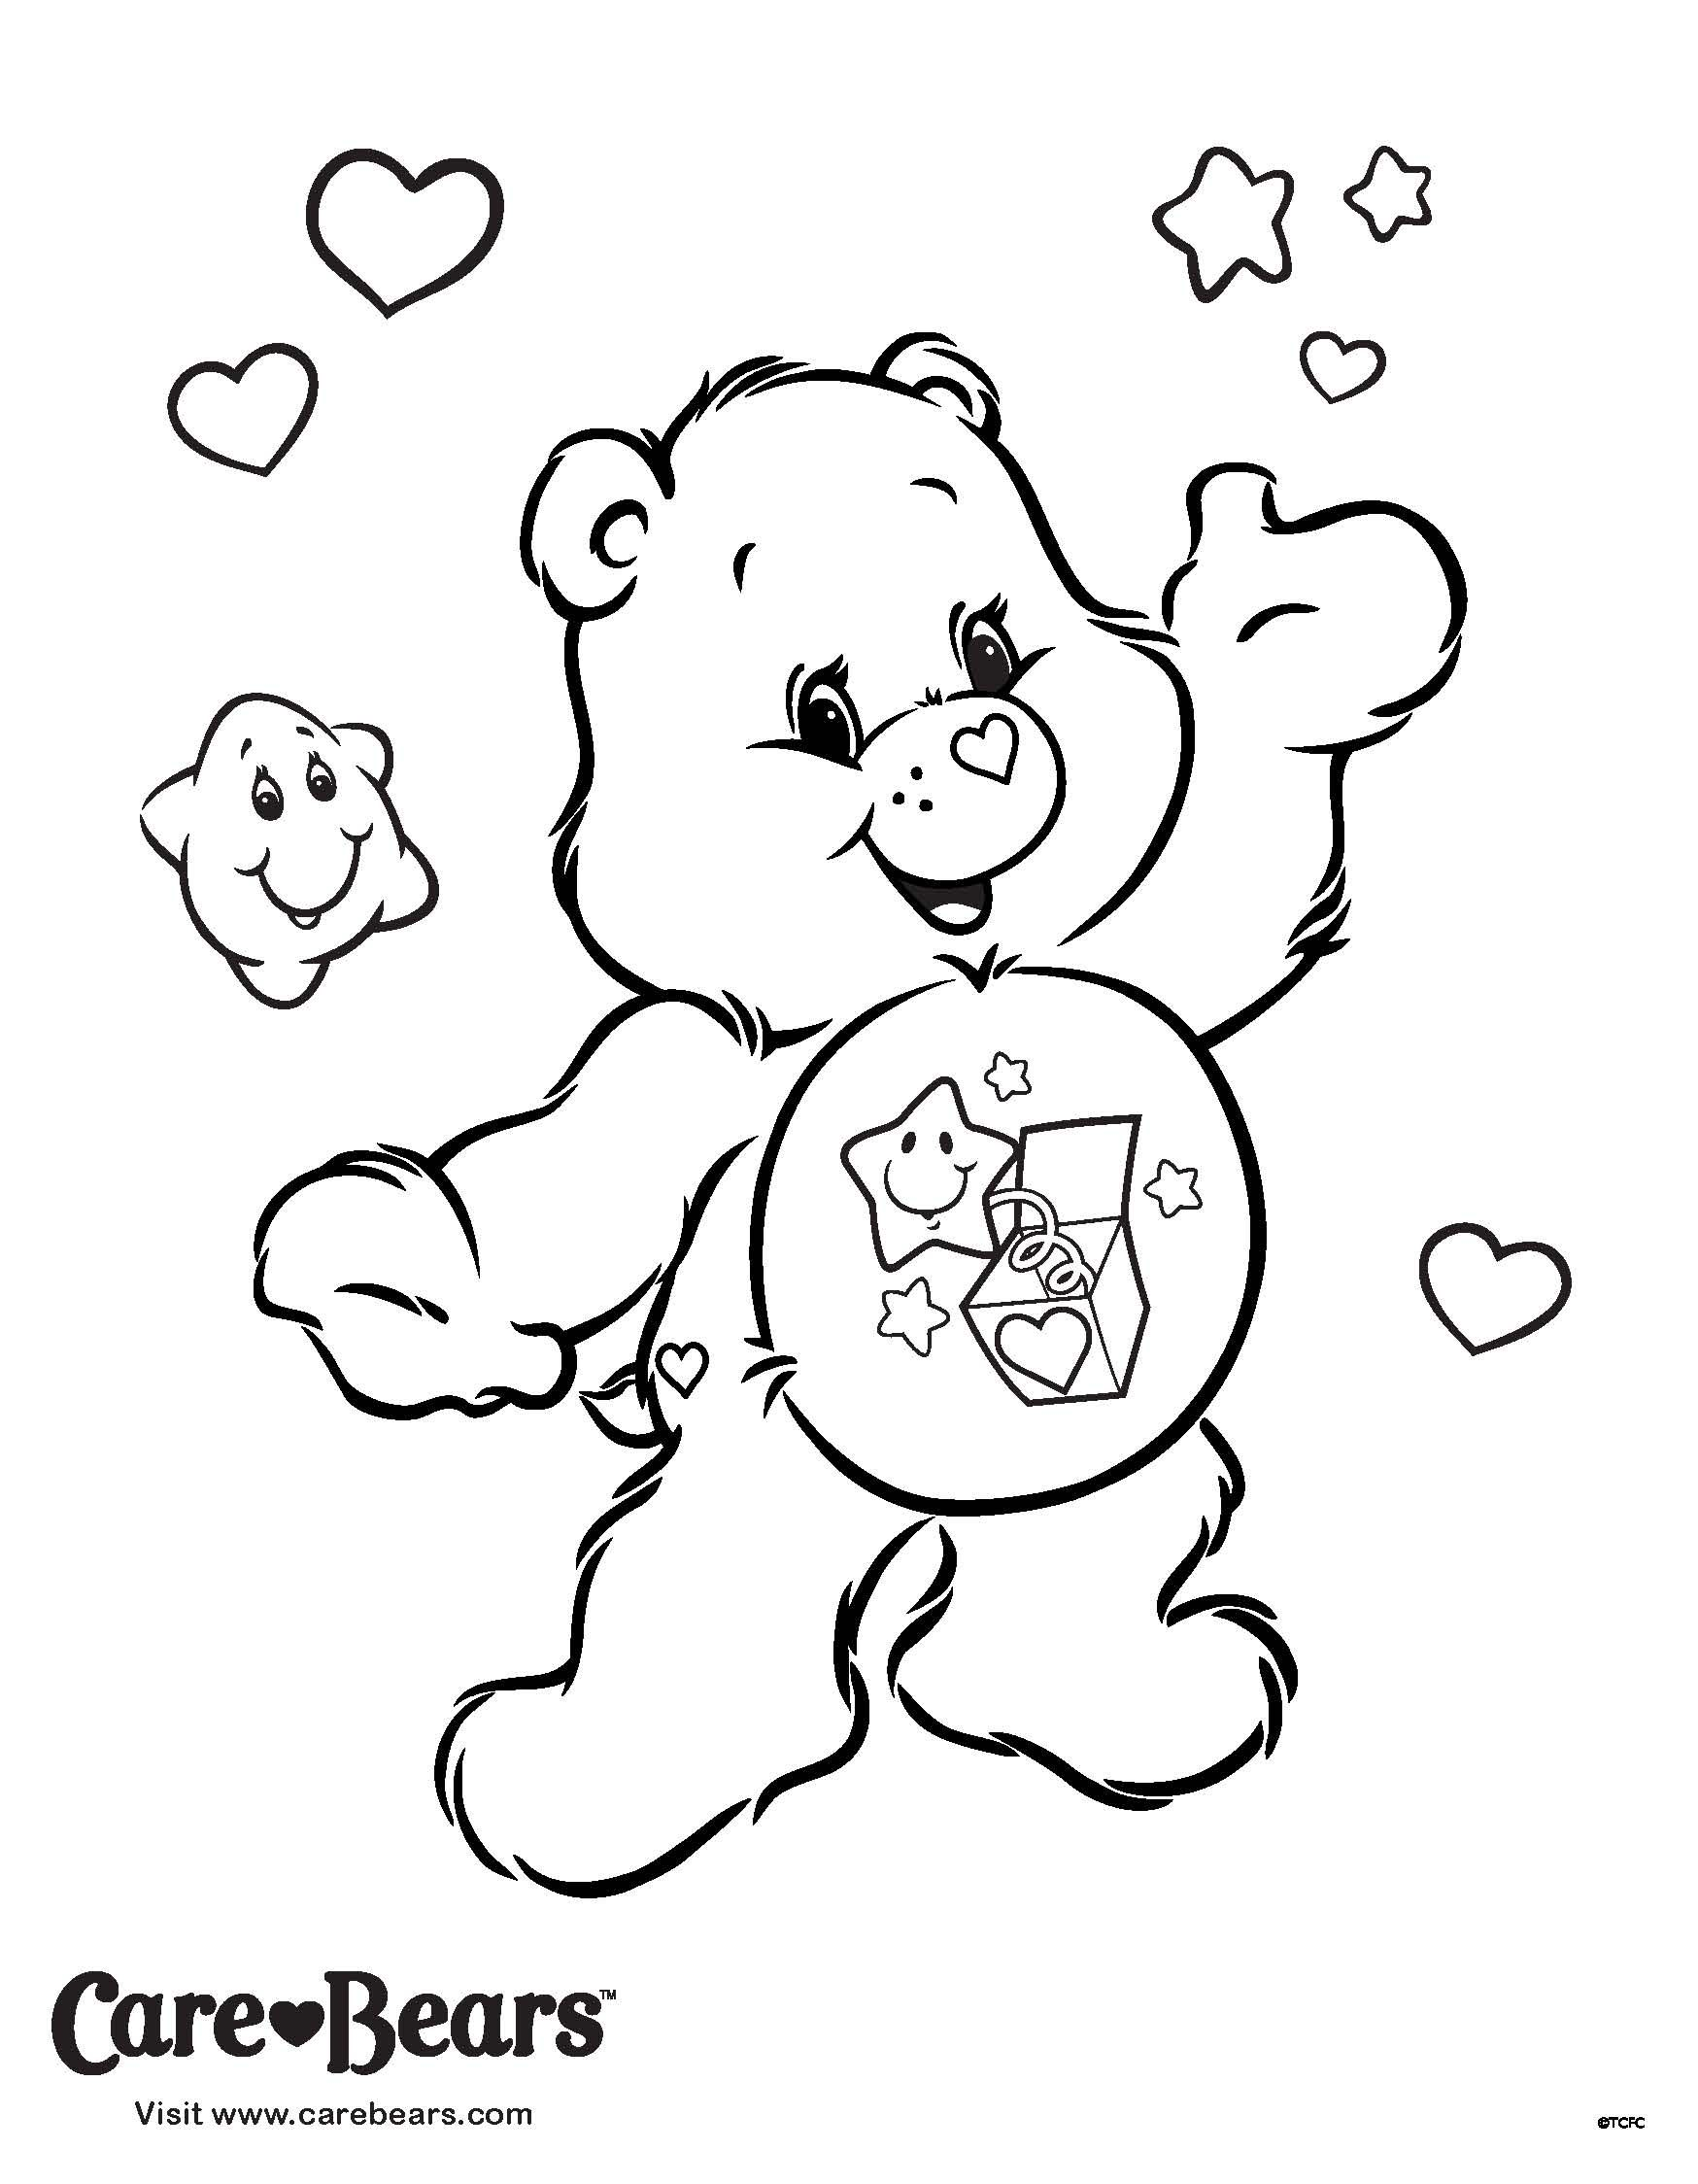 Care Bears Love Autumn Bear Coloring Pages Coloring Pages Cute